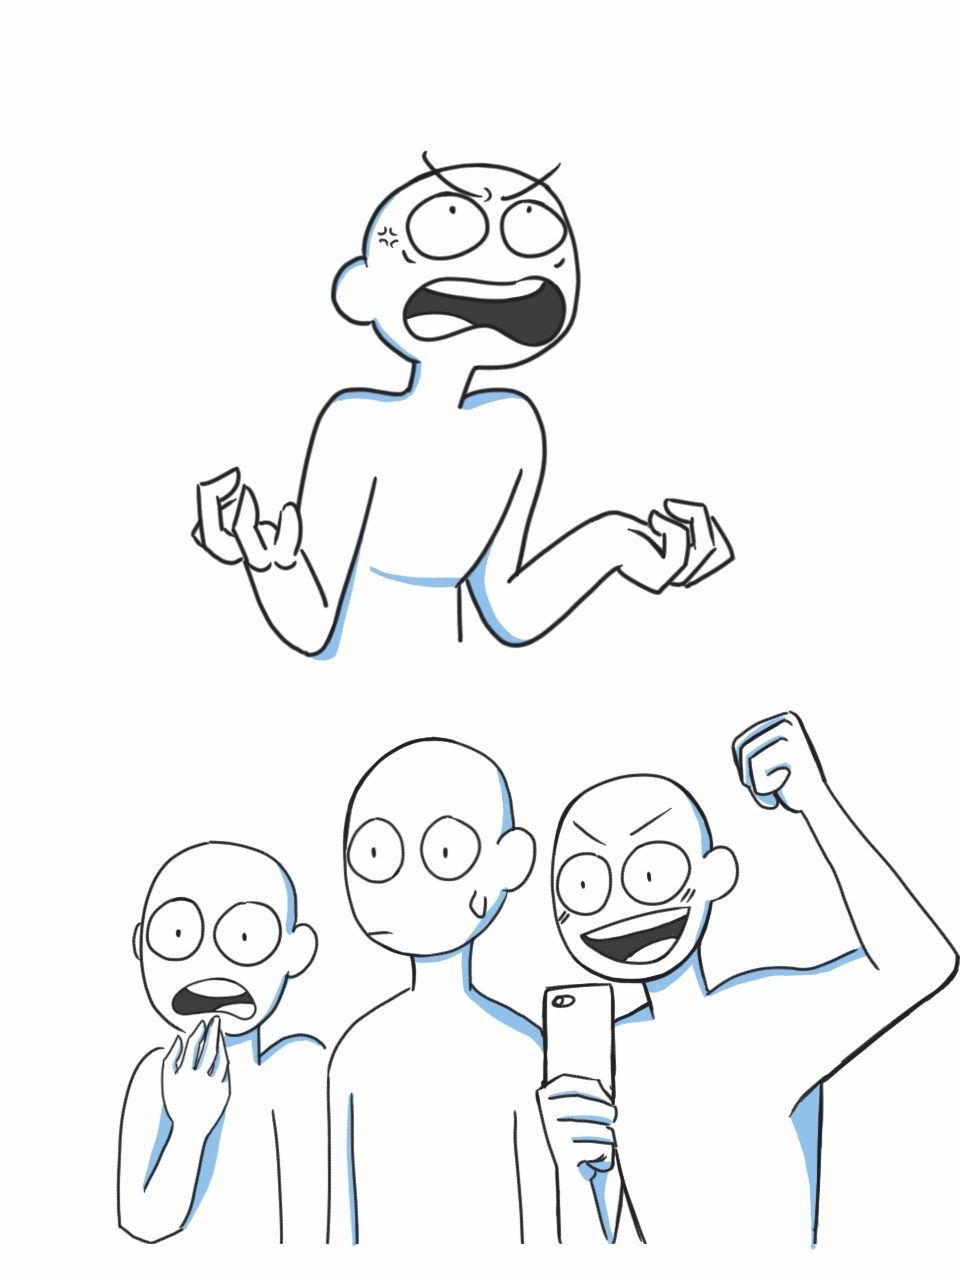 Pin By Rising Spirit On Draw Something In 2020 Drawing Meme Drawing Face Expressions Drawing Expressions